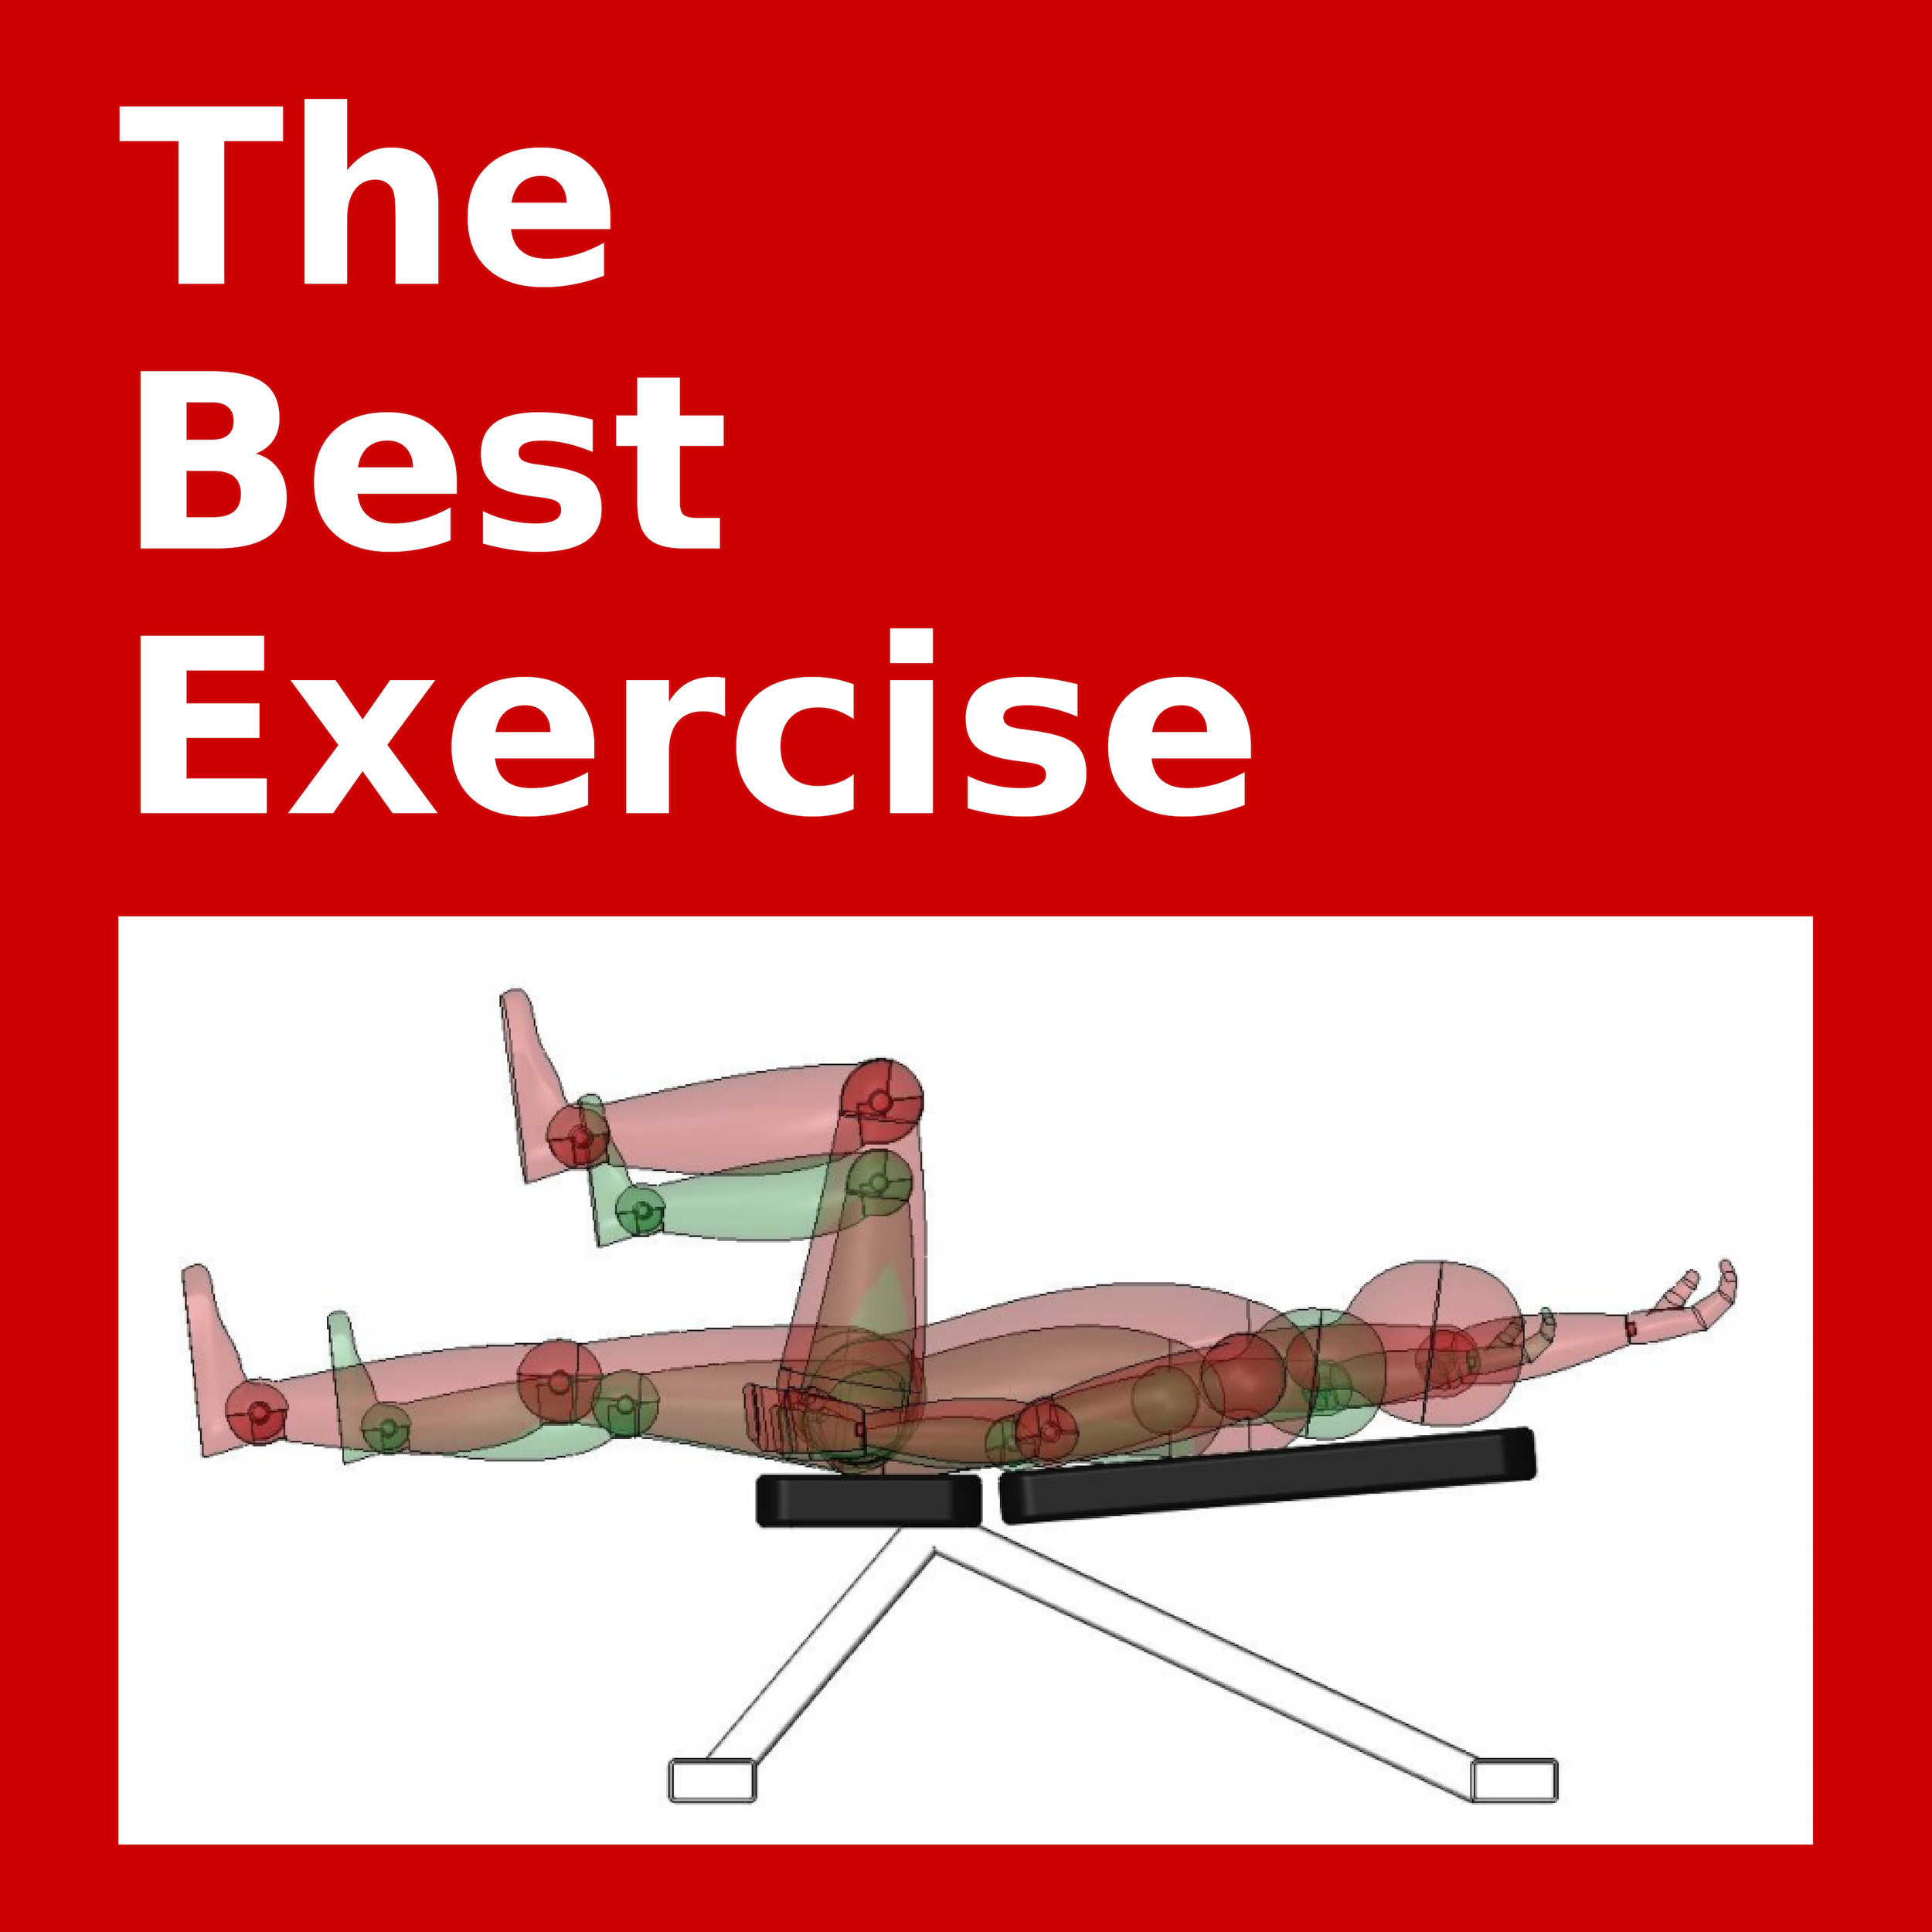 The Best Exercise